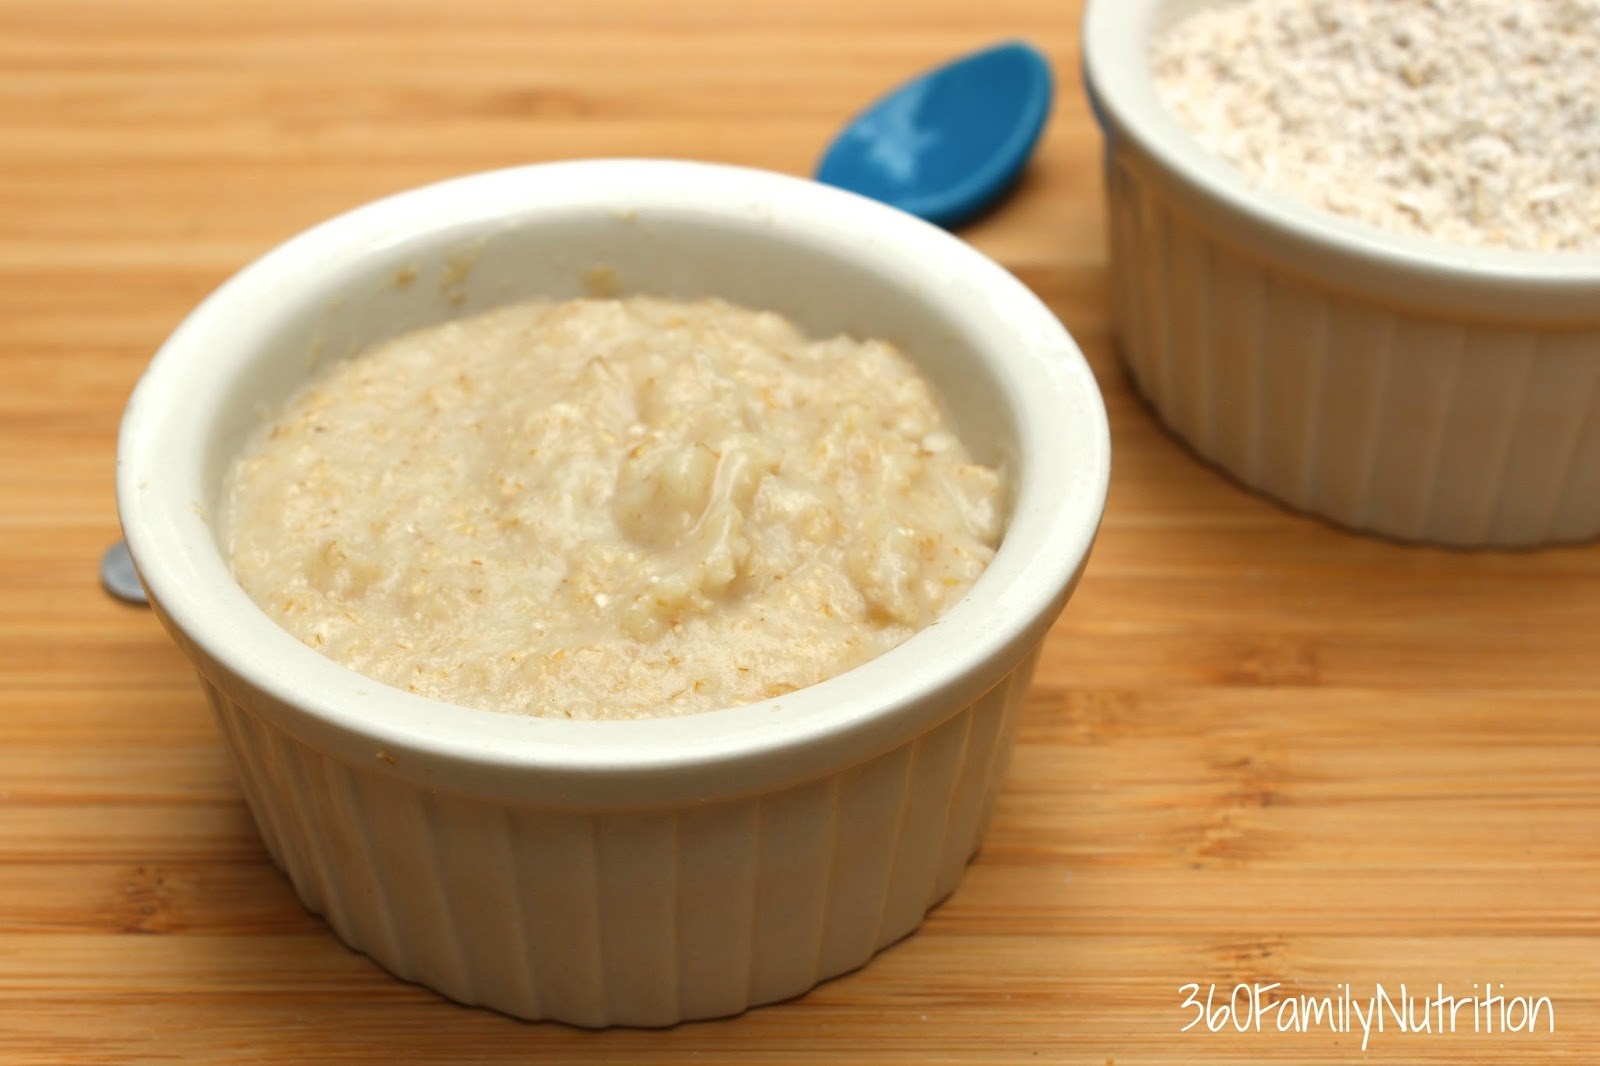 Baby banana oatmeal 360 family nutrition baby banana oatmeal baby uncategorized serve your little one this easy homemade baby food recipe forumfinder Image collections